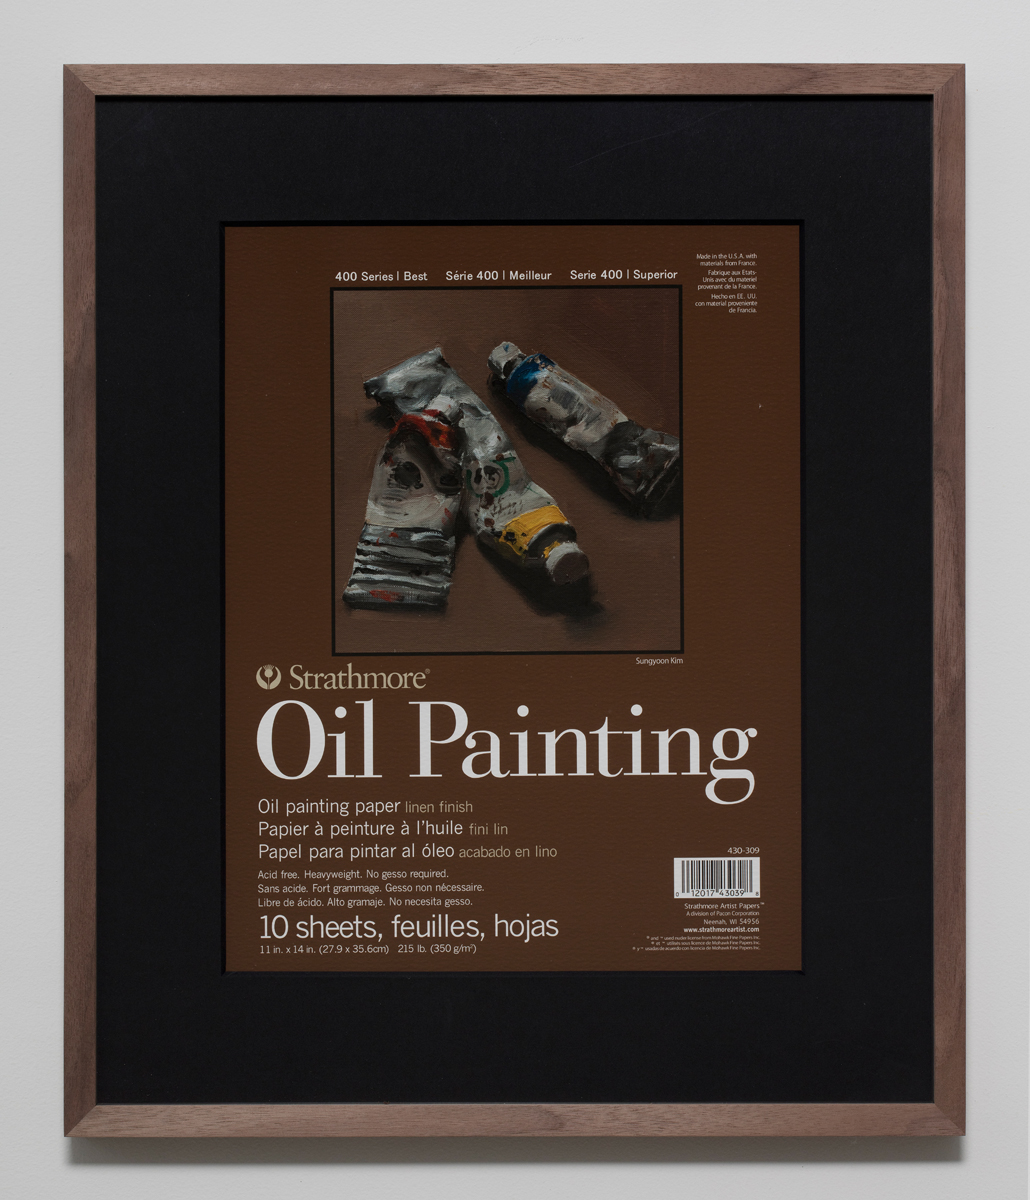 400 Series Oil Painting(1), 2018, Inkjet print on paper in walnut frame, 50.5 x 42.5 cm 이미지 제공: 갤러리현대 Courtesy of the artist and Gallery Hyundai.